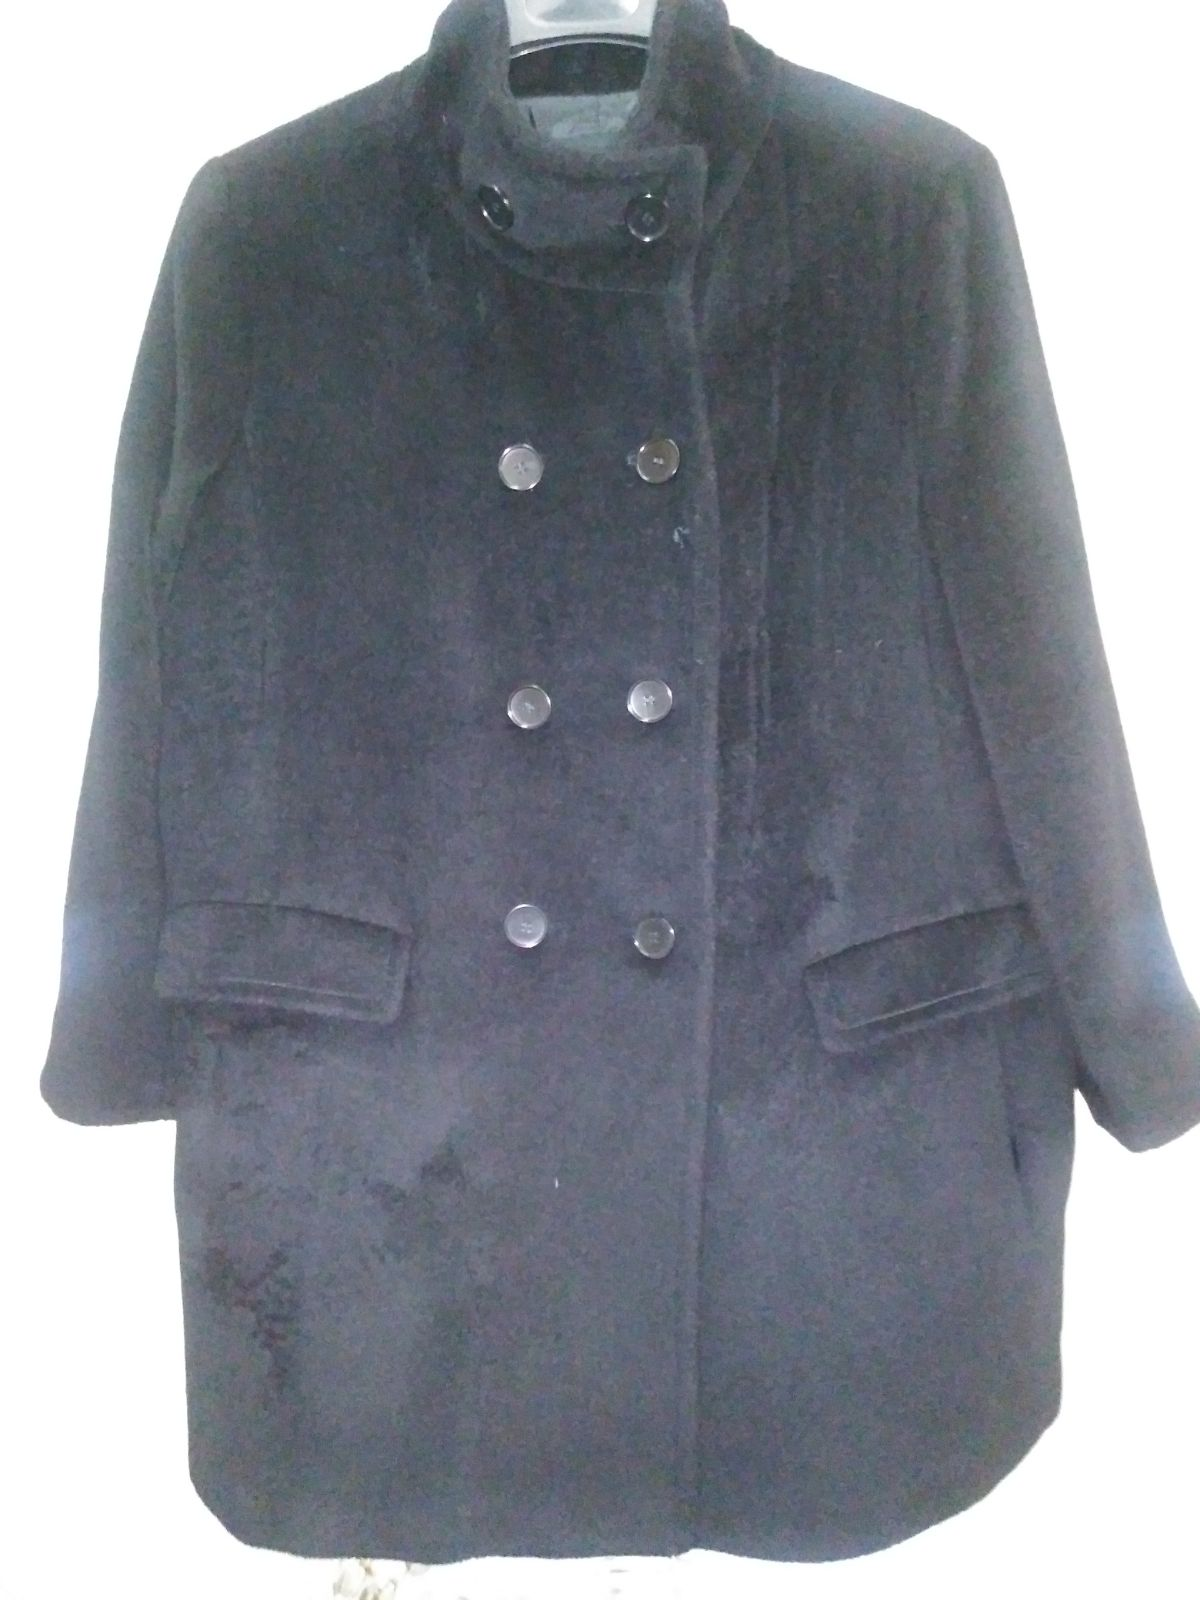 Wool Coat By Talbots Sz. 14